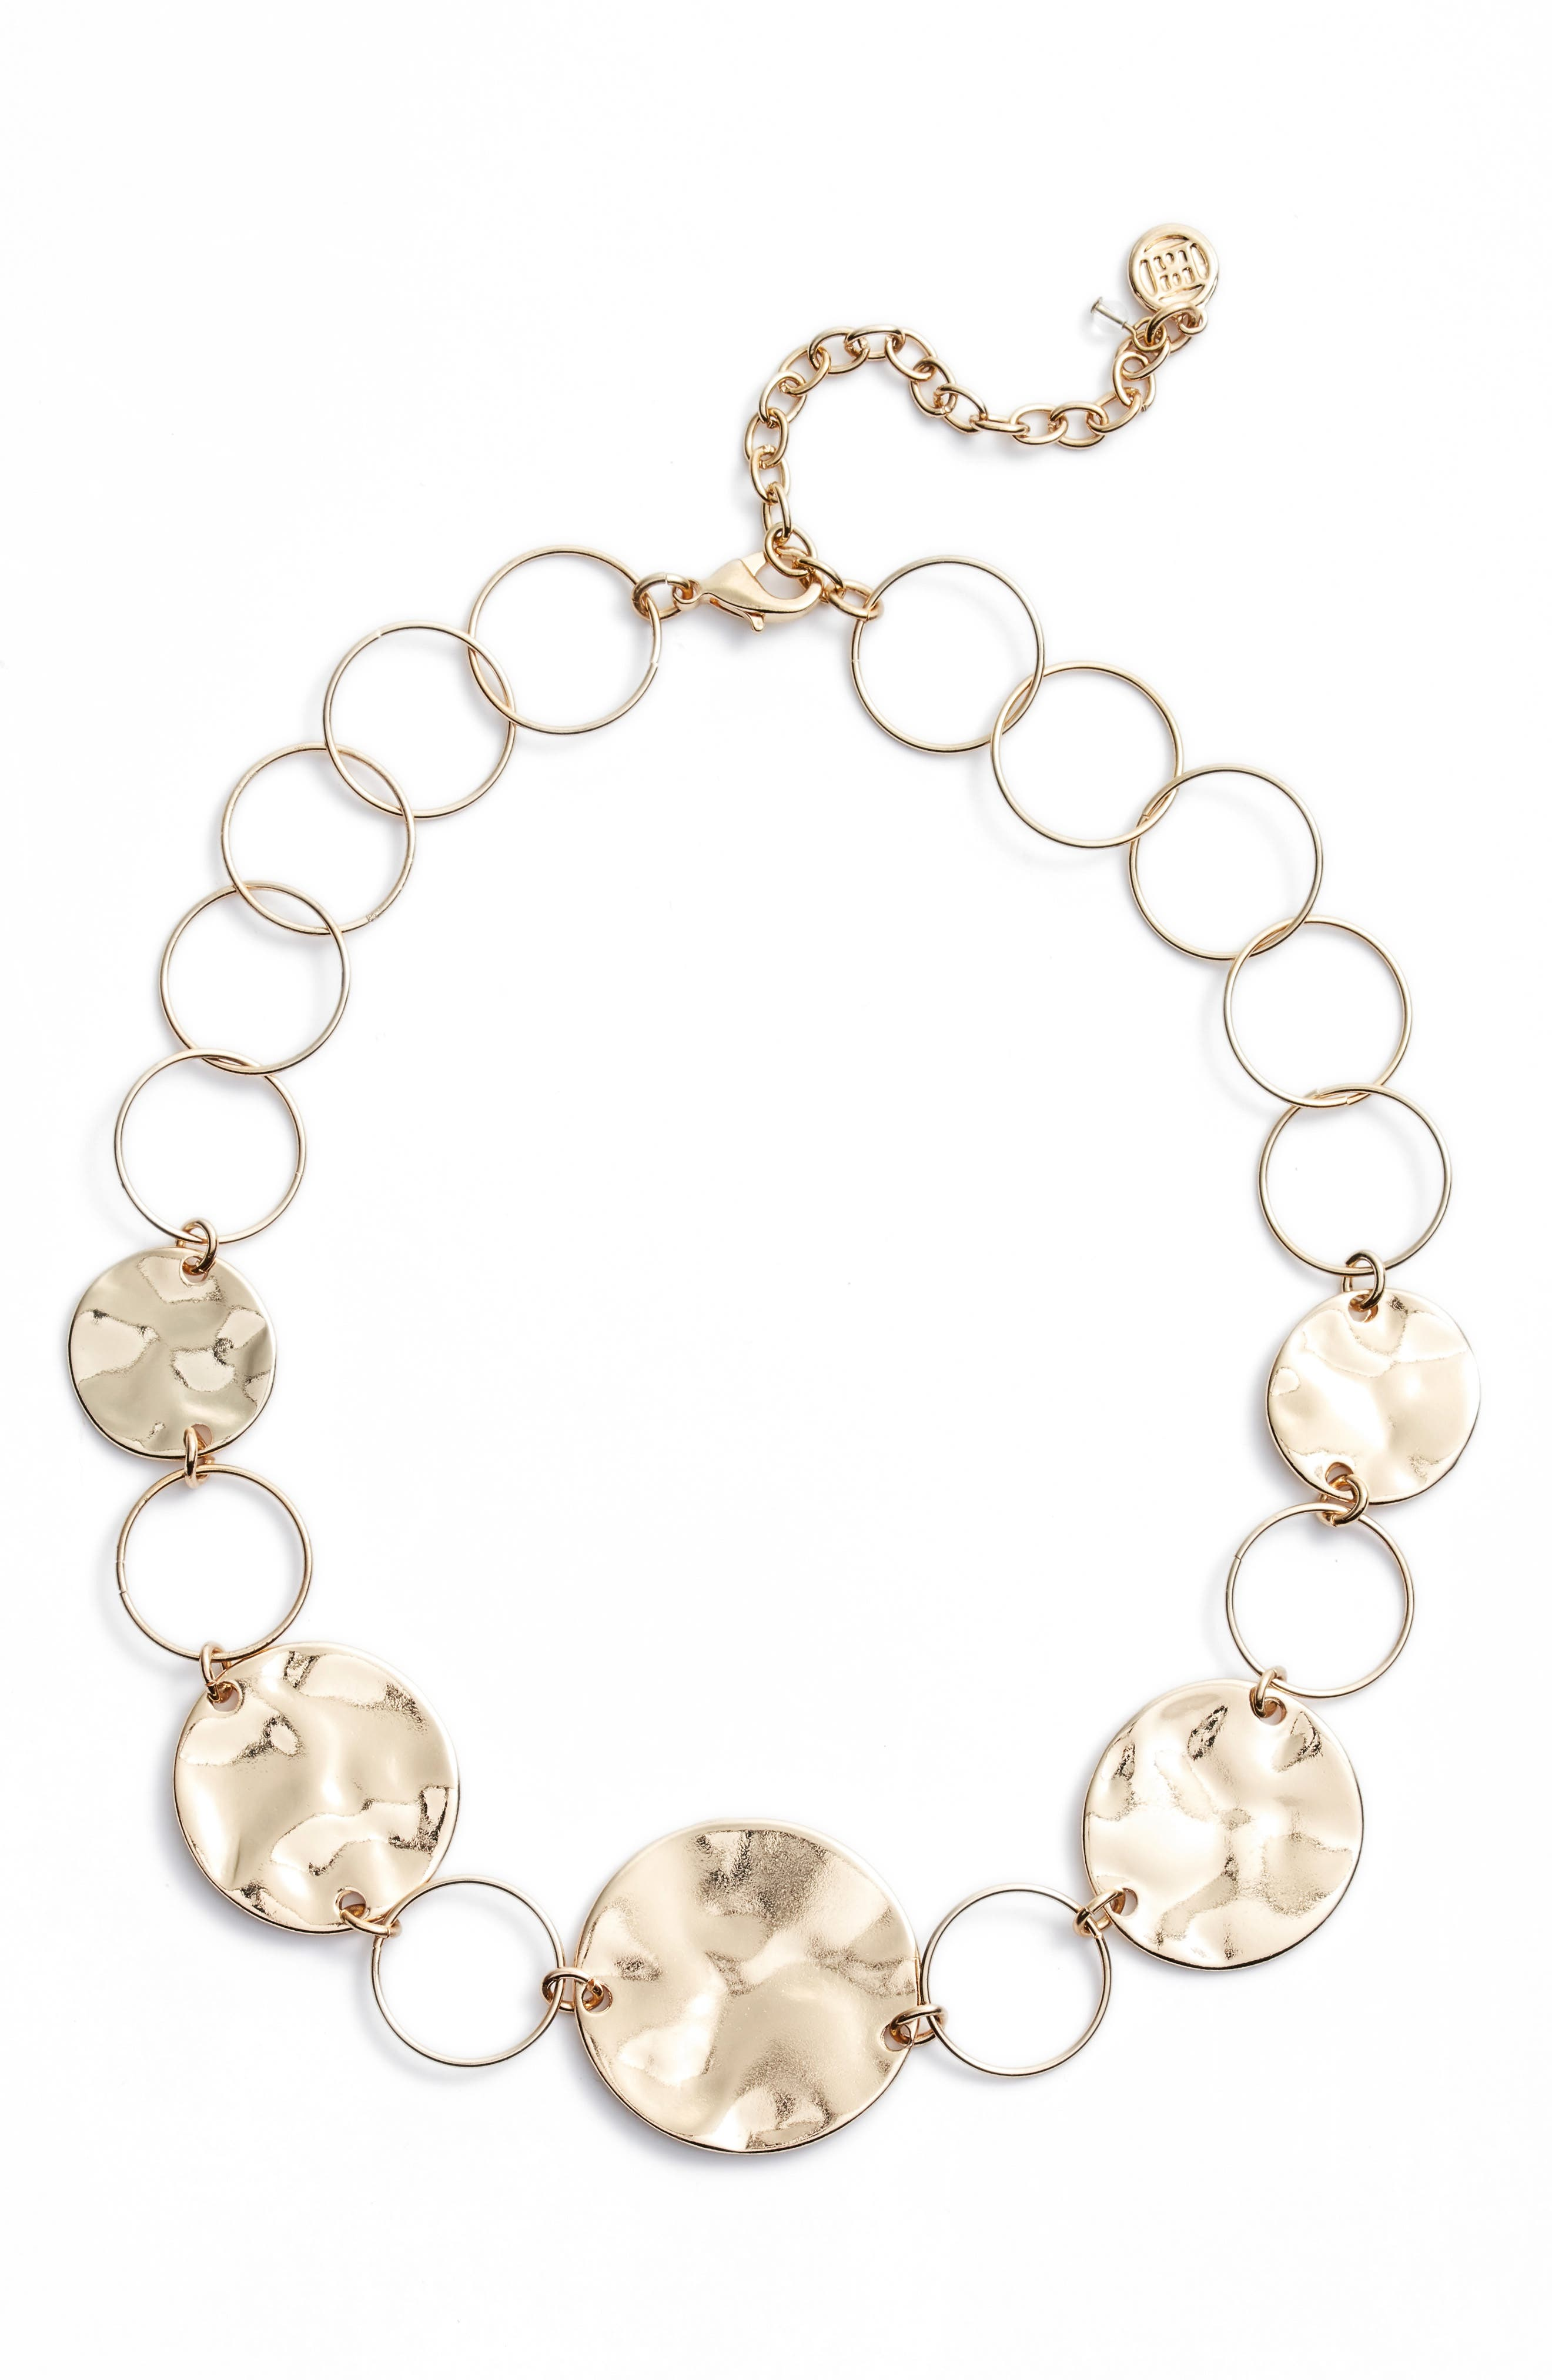 AREA STARS Hammered Disc Necklace in Gold